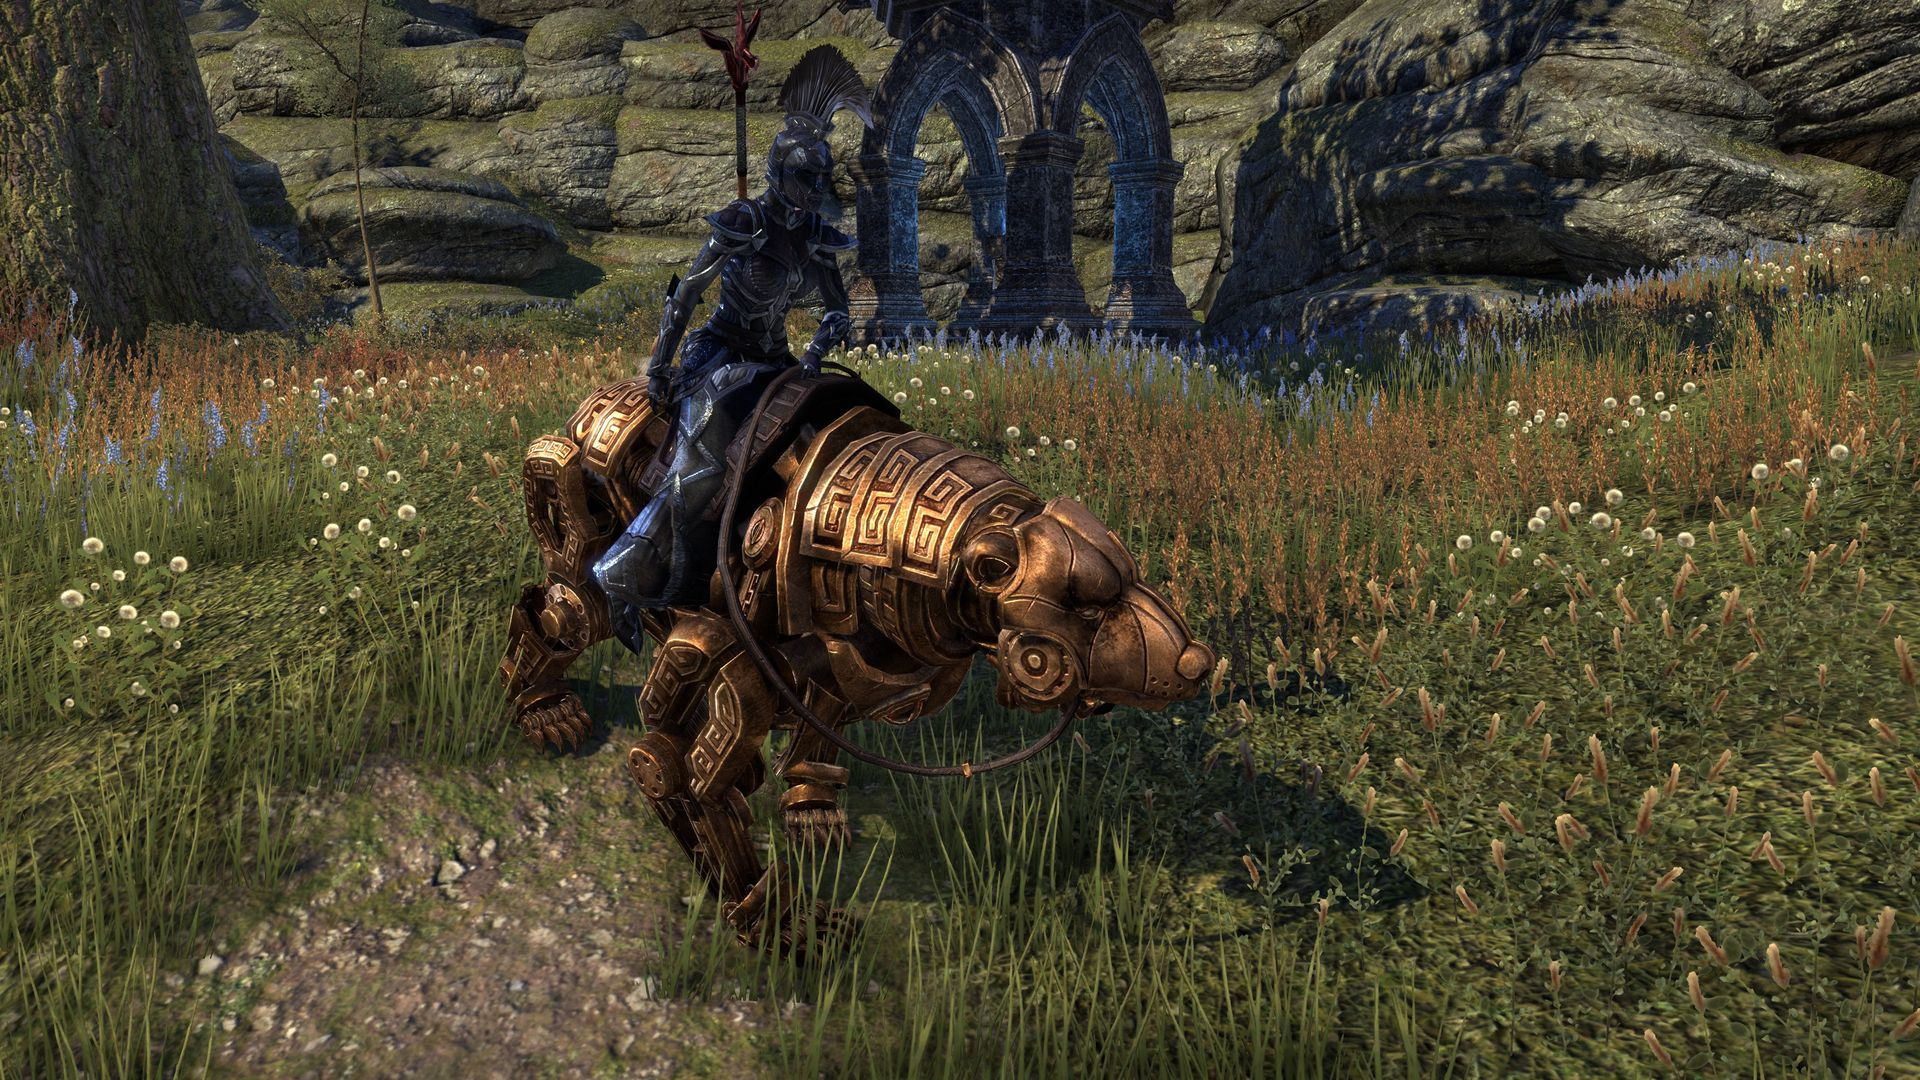 Dwarven Bear, Apex Mount, Dwarven Crown Crate (image by @serpentaa)